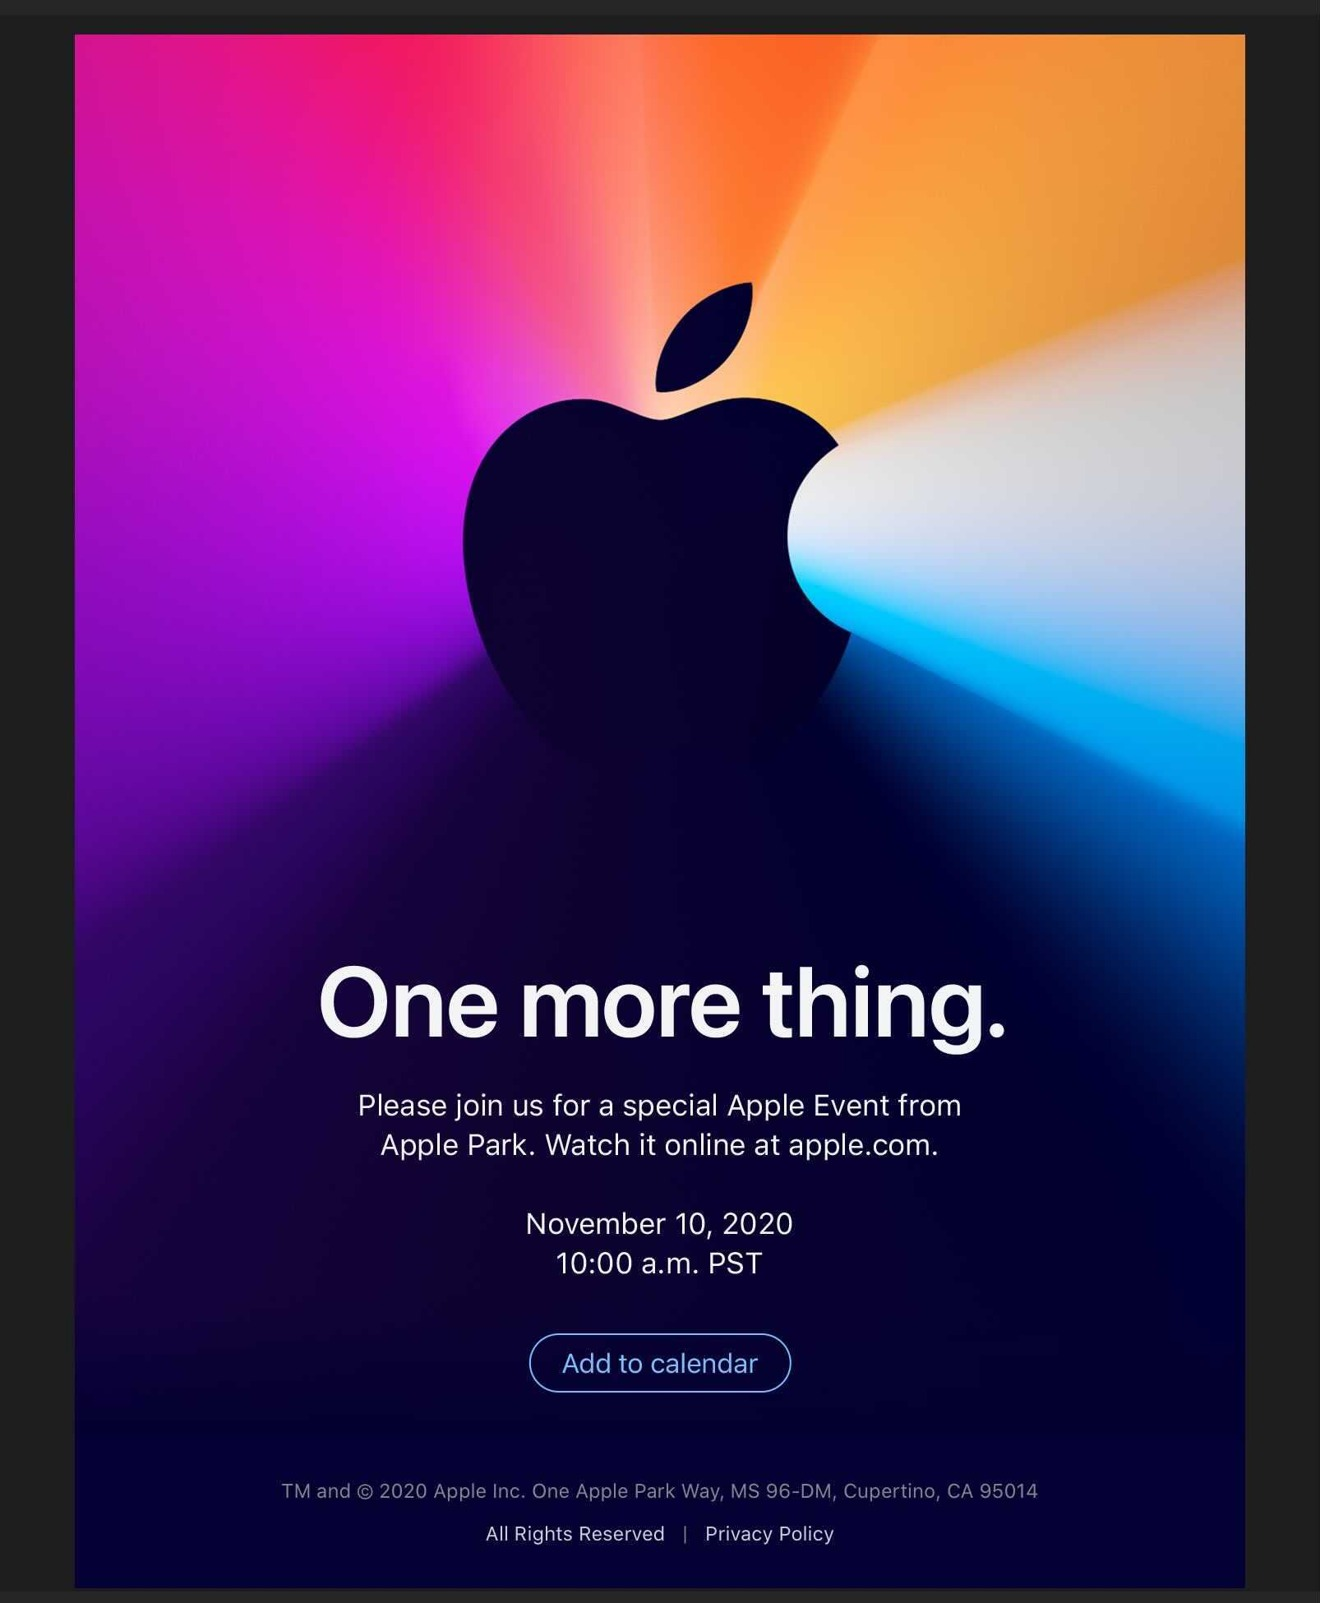 Apple Announces Apple Silicon Mac Special Event for November 10